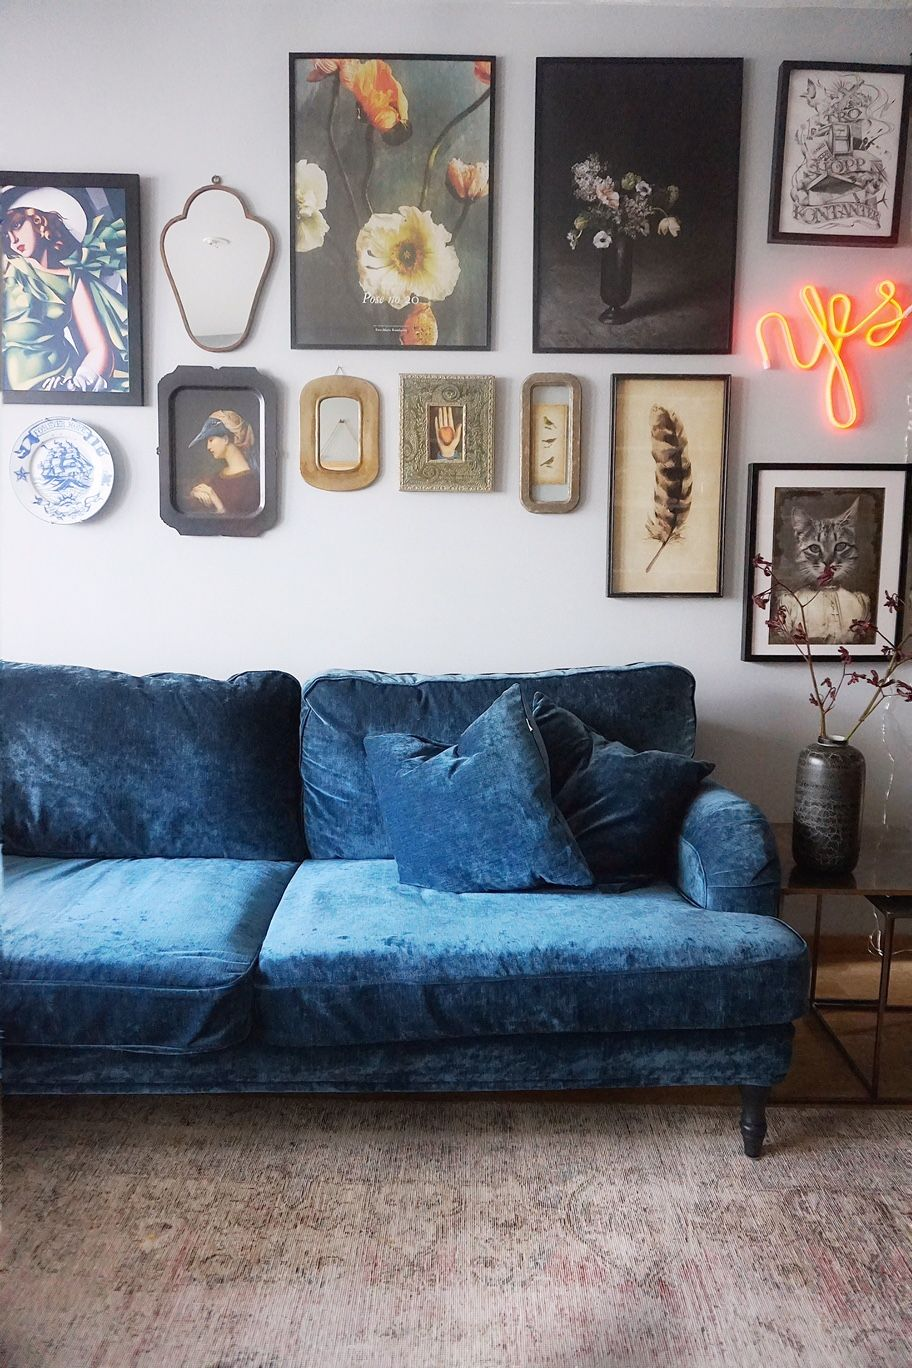 Today In Our Weekly Signature What S Hot On Pinterest We Are Going To Show You 5 Bohemi Eclectic Living Room Vintage Living Room Velvet Living Room Furniture #velvet #living #room #furniture